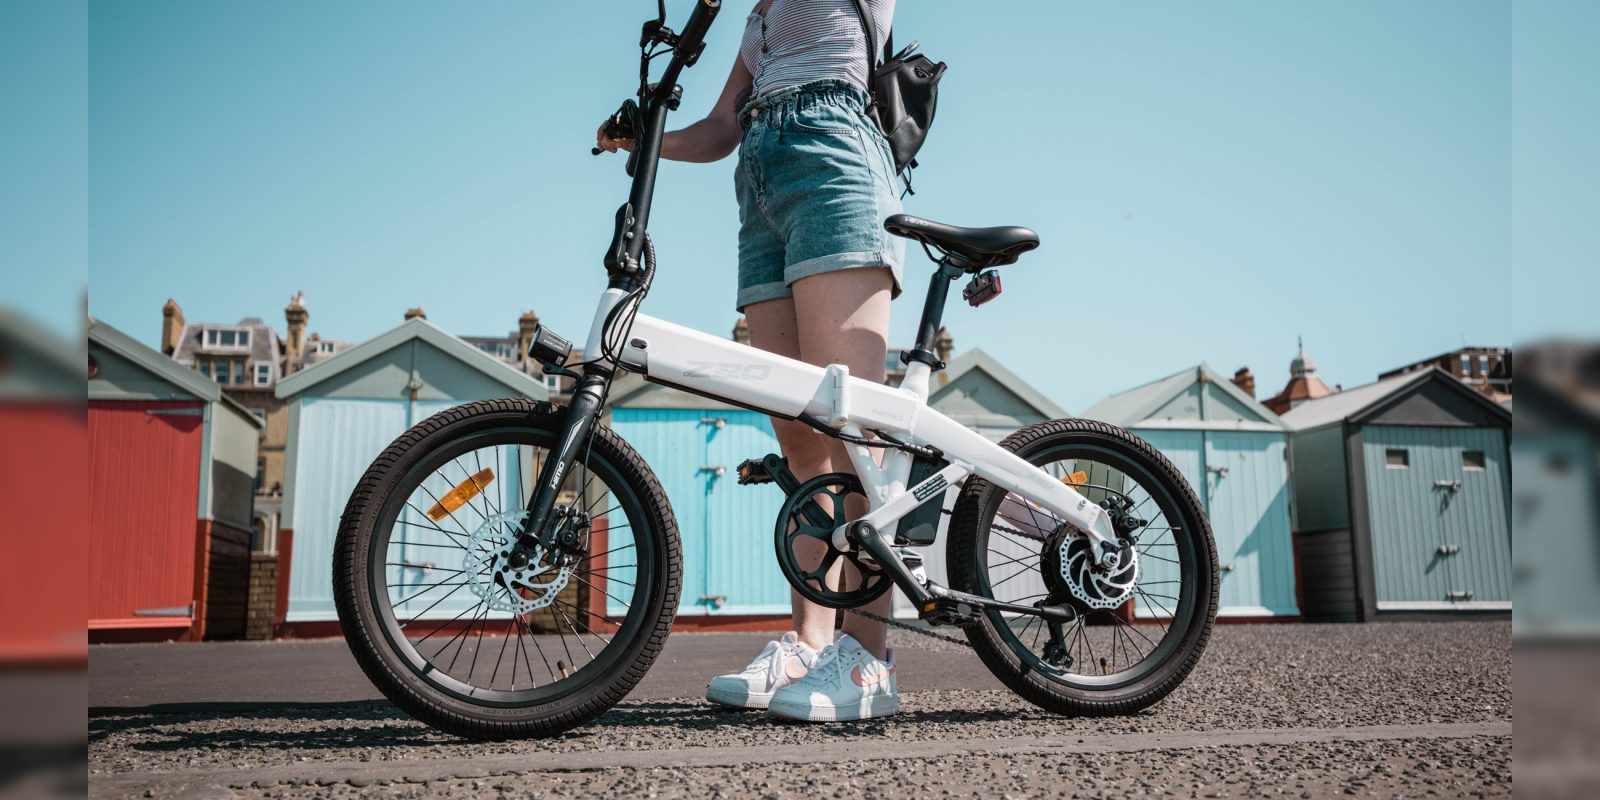 The $699 HiMo Z20 folding electric bike has just been launched